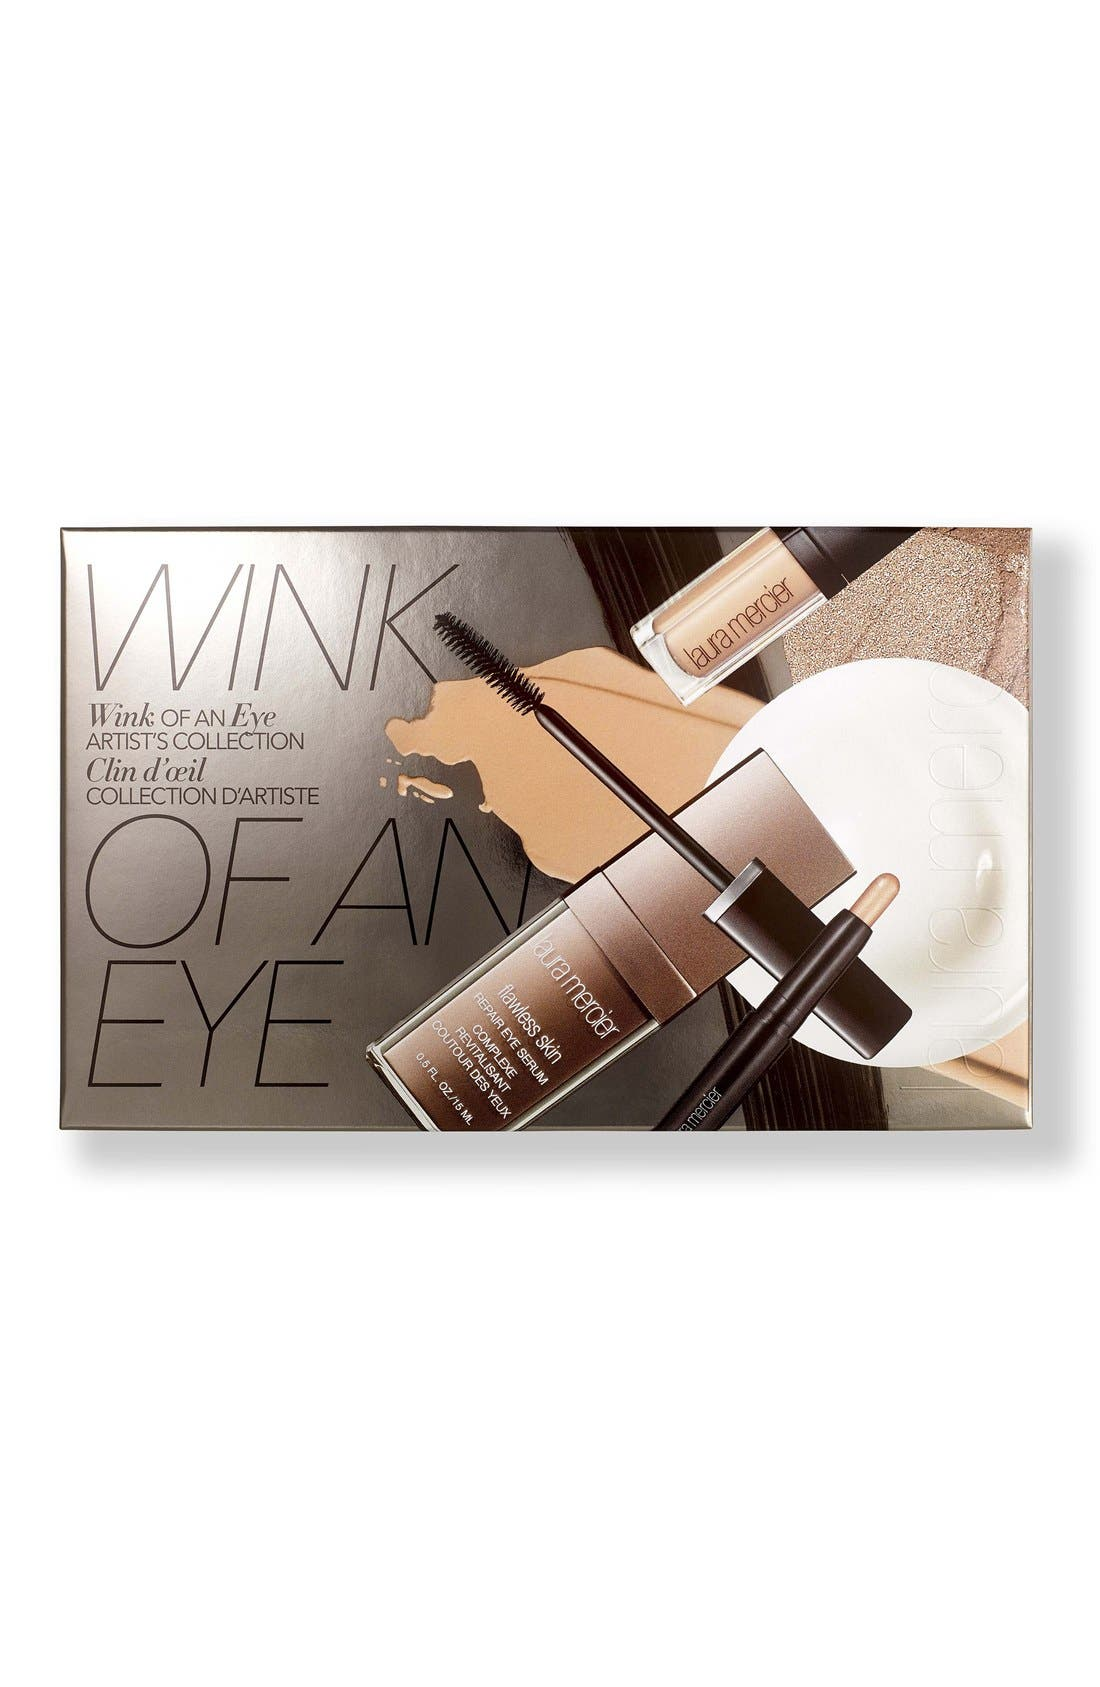 Laura Mercier 'Wink of an Eye' Artist's Collection (Nordstrom Exclusive) ($139 Value)